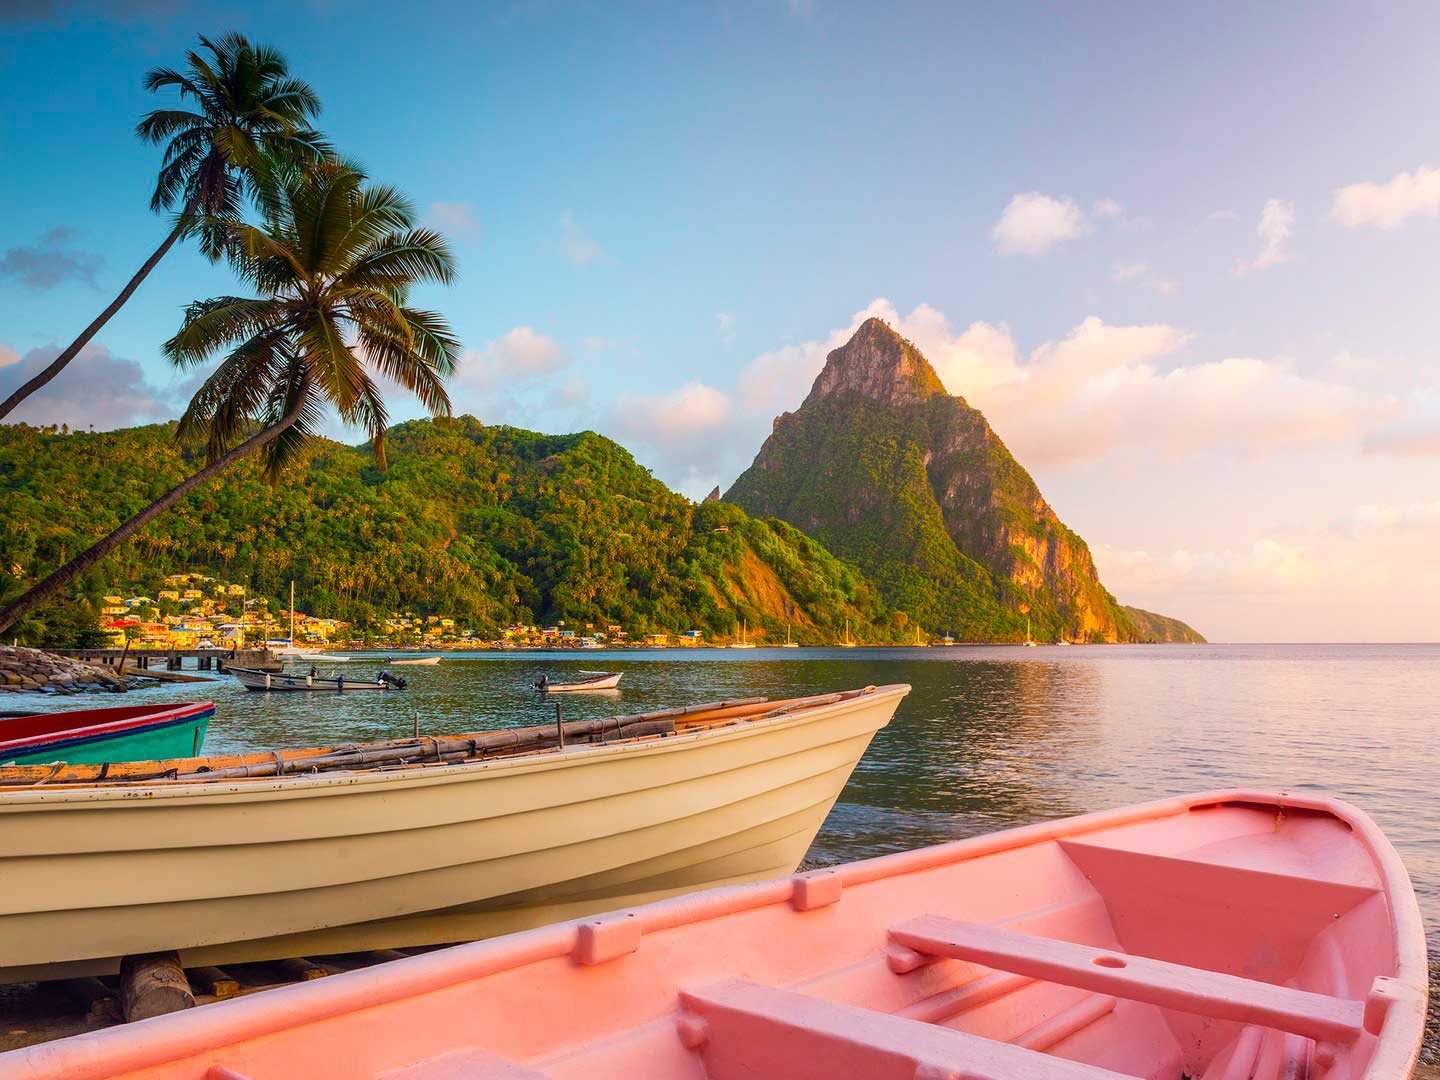 Crédito foto: http://www.cntraveler.com/galleries/2016-02-14/the-best-honeymoon-islands-in-the-world-readers-choice-awards-2015/20